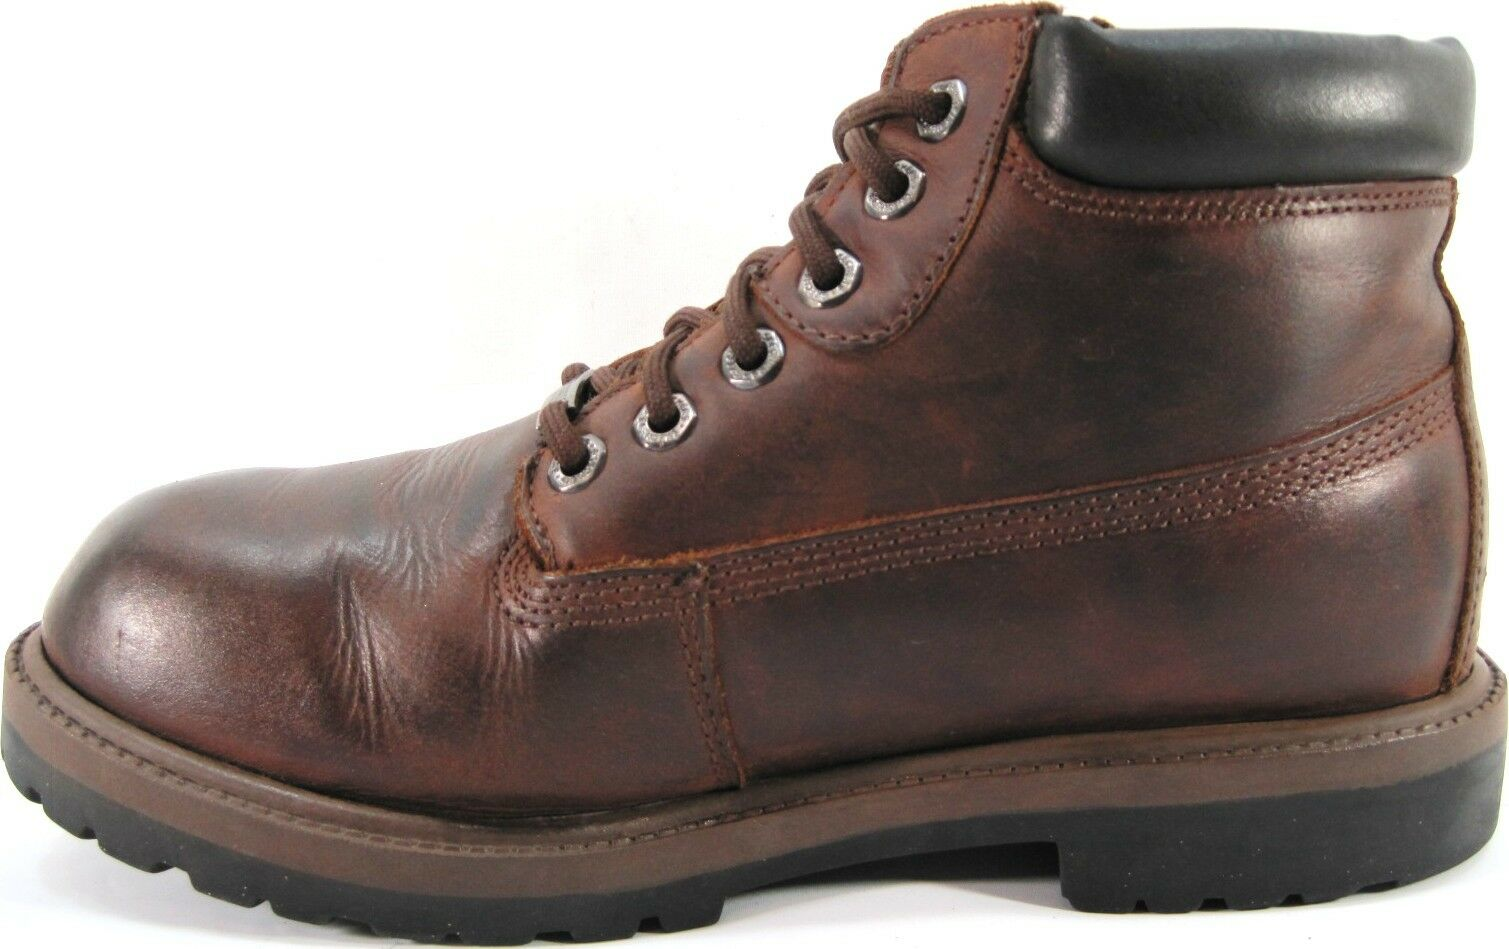 Skechers Men Work Euro Boots Size 9 Euro Work 42 Brown Water Proof Style 4442 8def80